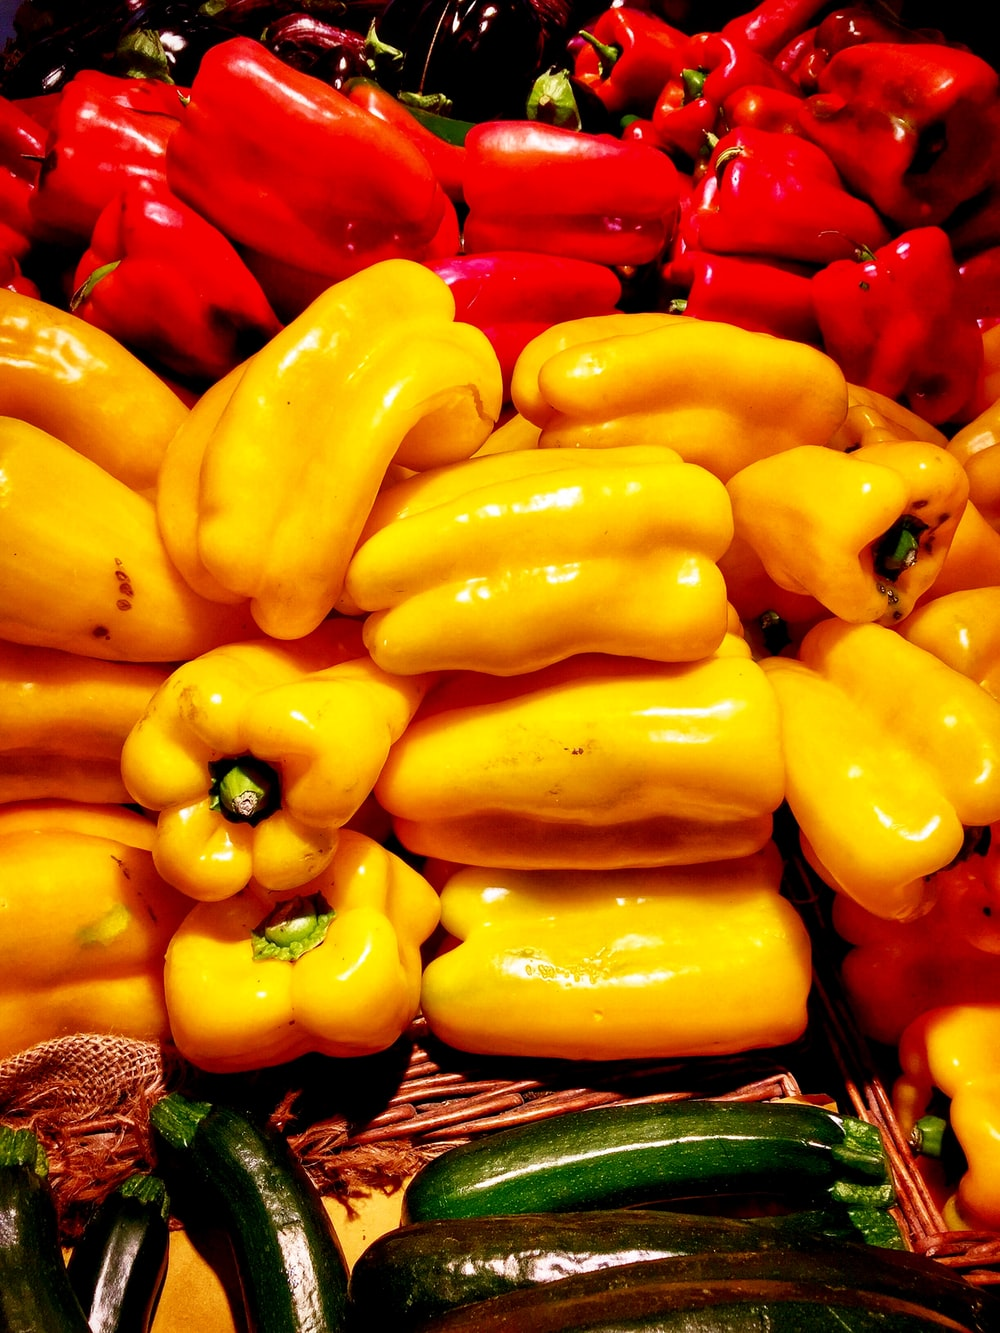 pile of yellow and red bell peppers